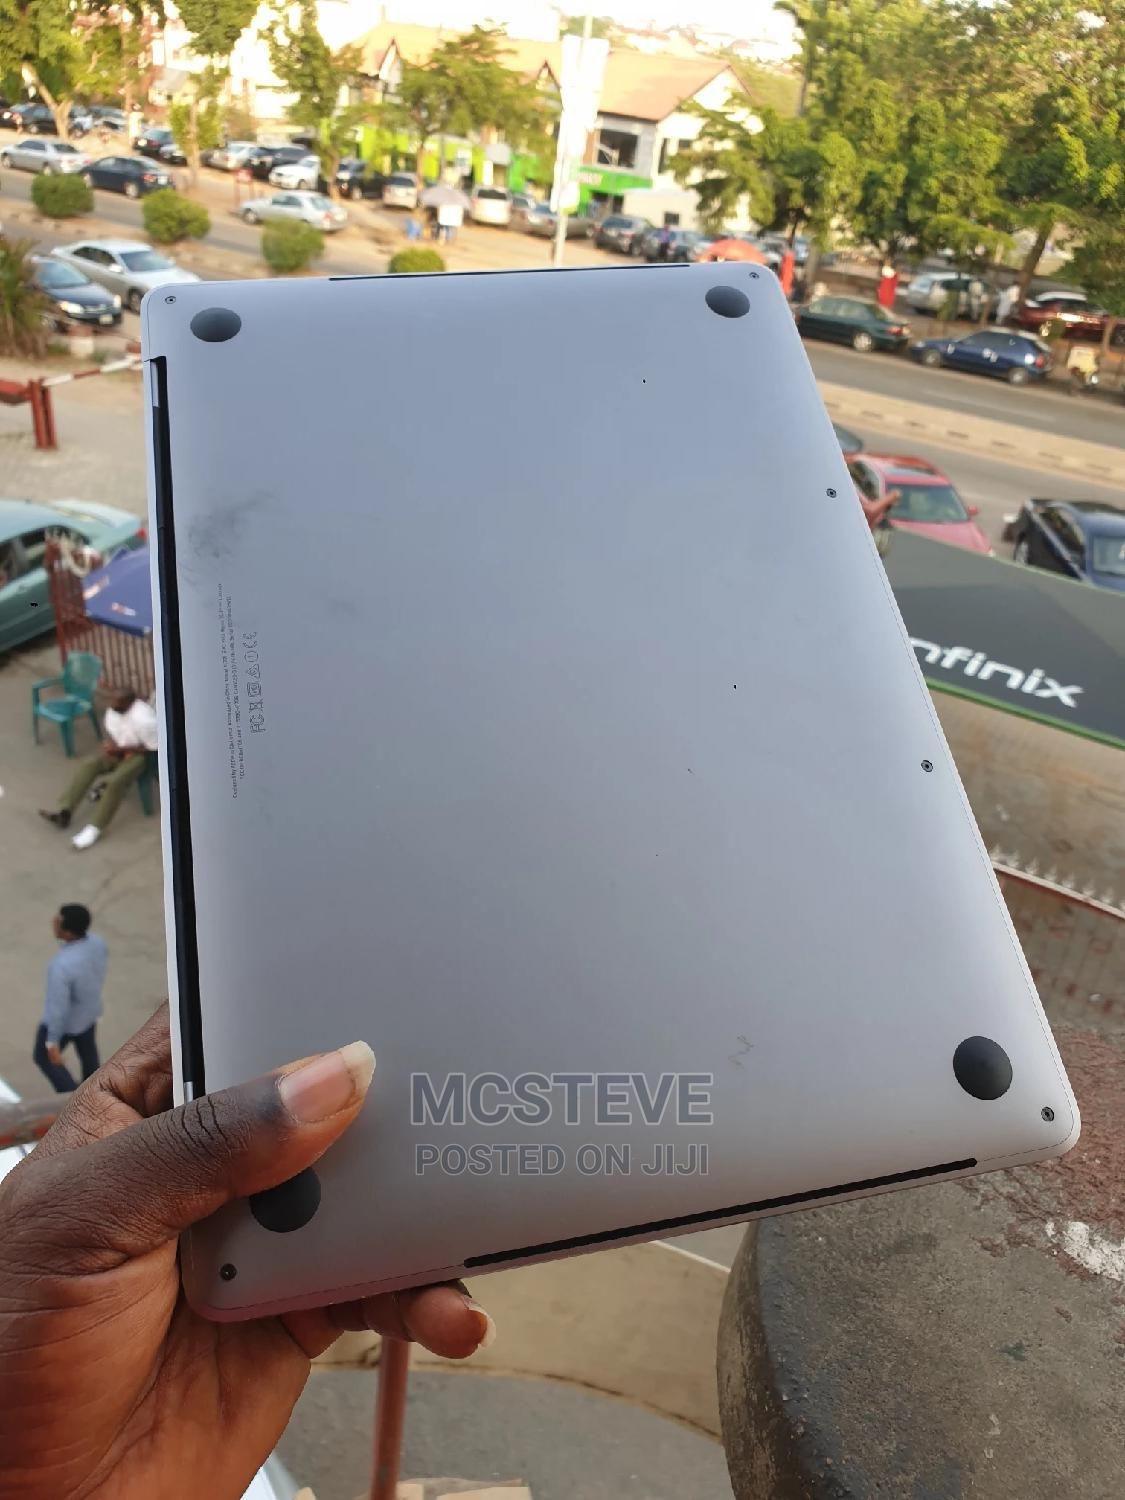 Laptop Apple MacBook 2017 8GB Intel Core I5 SSD 256GB   Laptops & Computers for sale in Wuse 2, Abuja (FCT) State, Nigeria